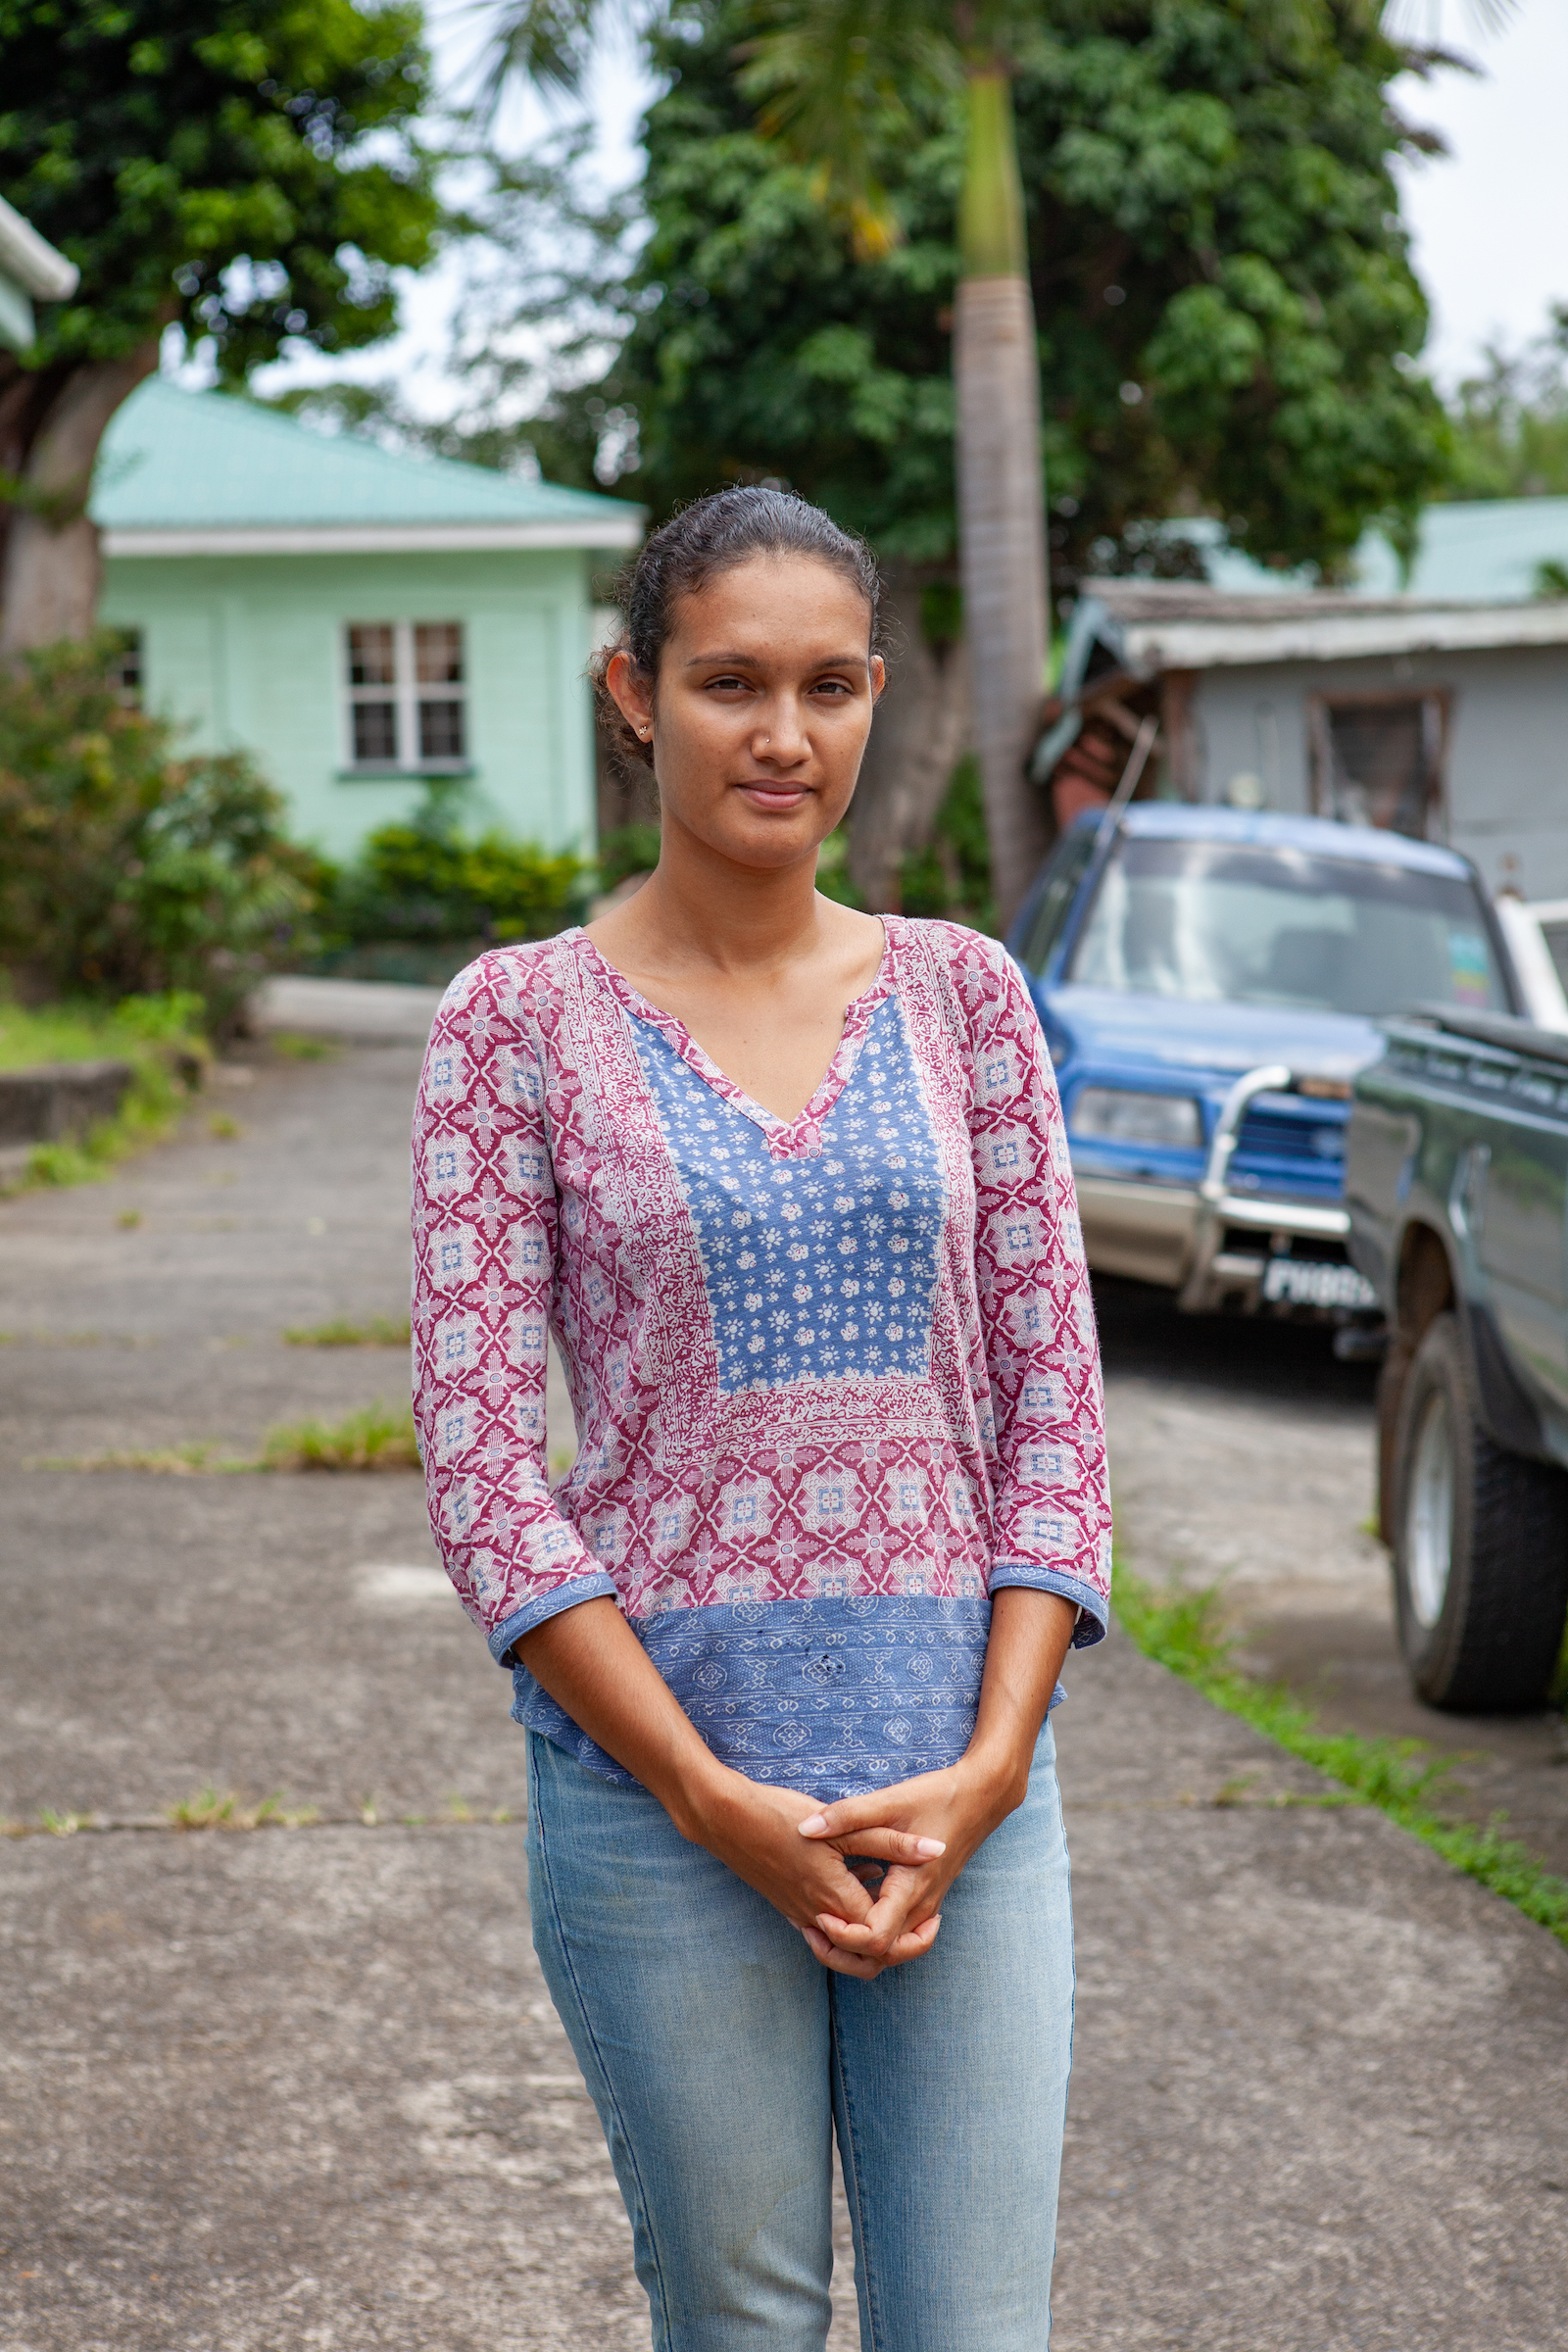 Jeanelle Brisbane, founder of the nonprofit WildDominique, is part of a younger generation energizing mountain chicken conservation efforts on Dominica. Photograph by Geoffrey Giller